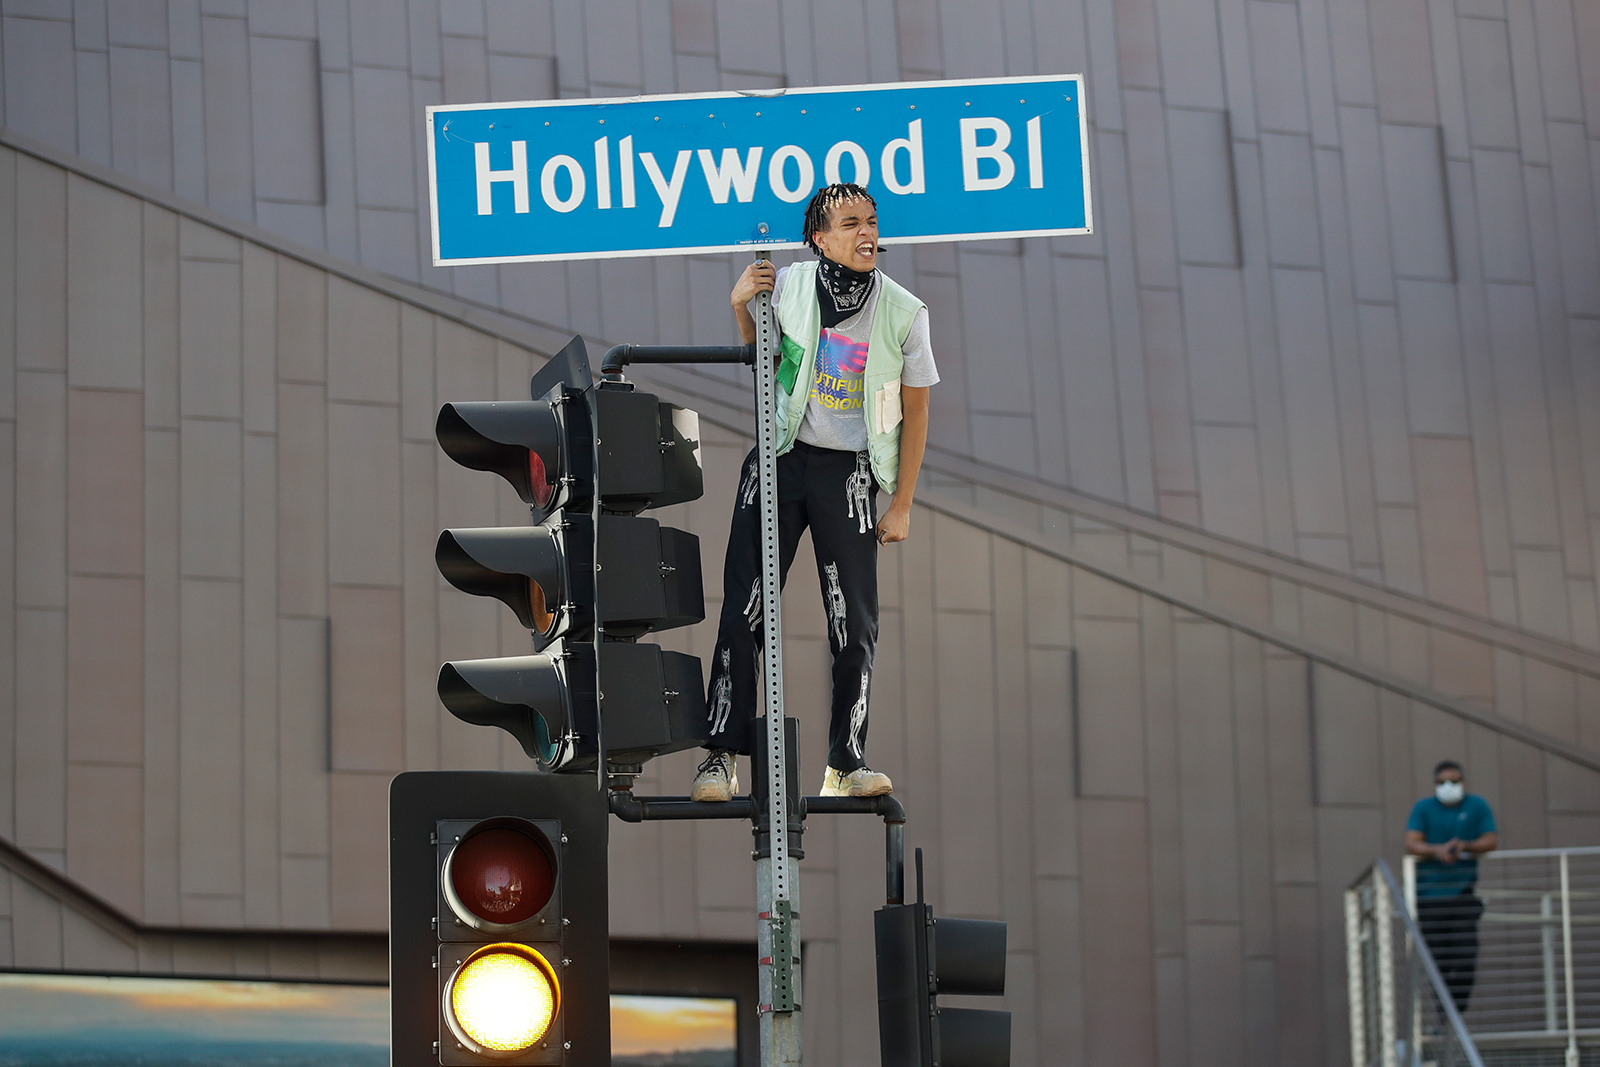 A demonstrator shouts slogans after climbing on a traffic light on June 7, in the Hollywood area of Los Angeles.